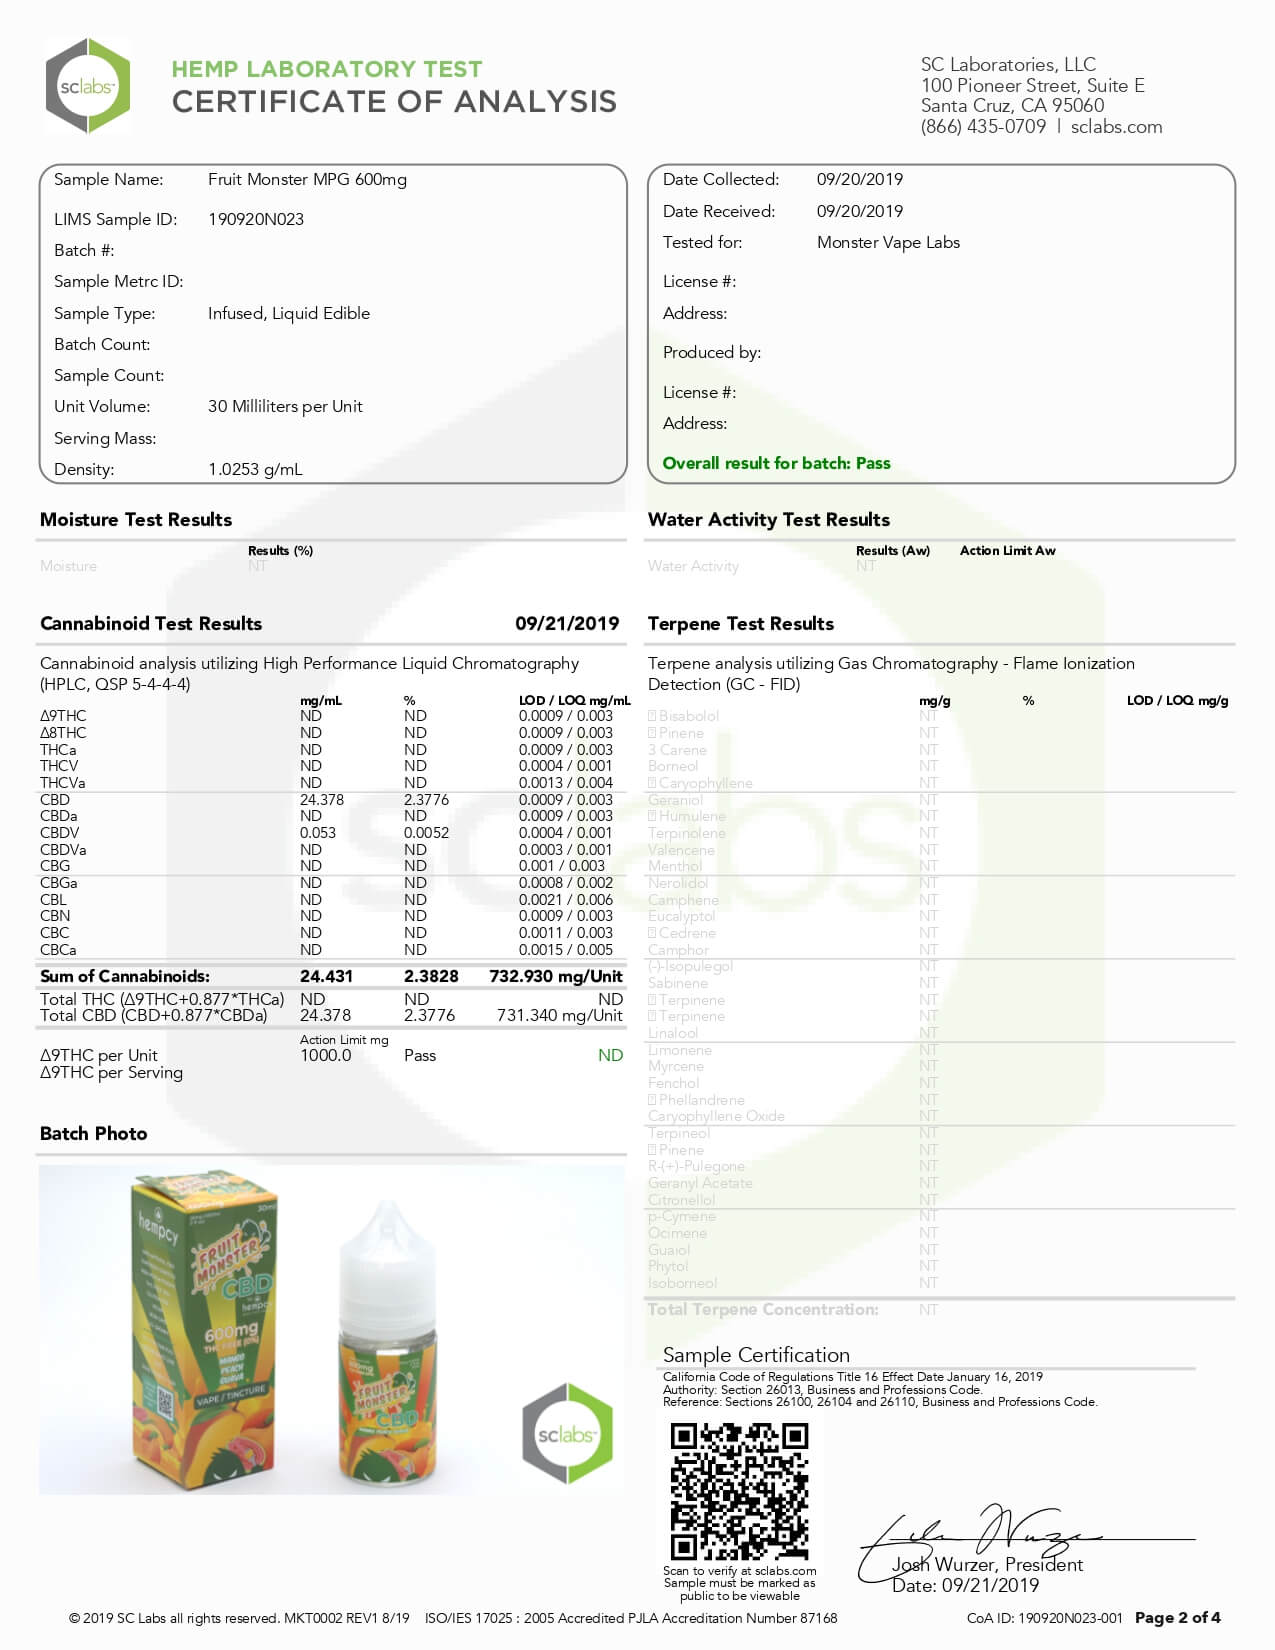 Fruit Monster CBD Vape Mango Peach Guava 600mg Lab Report